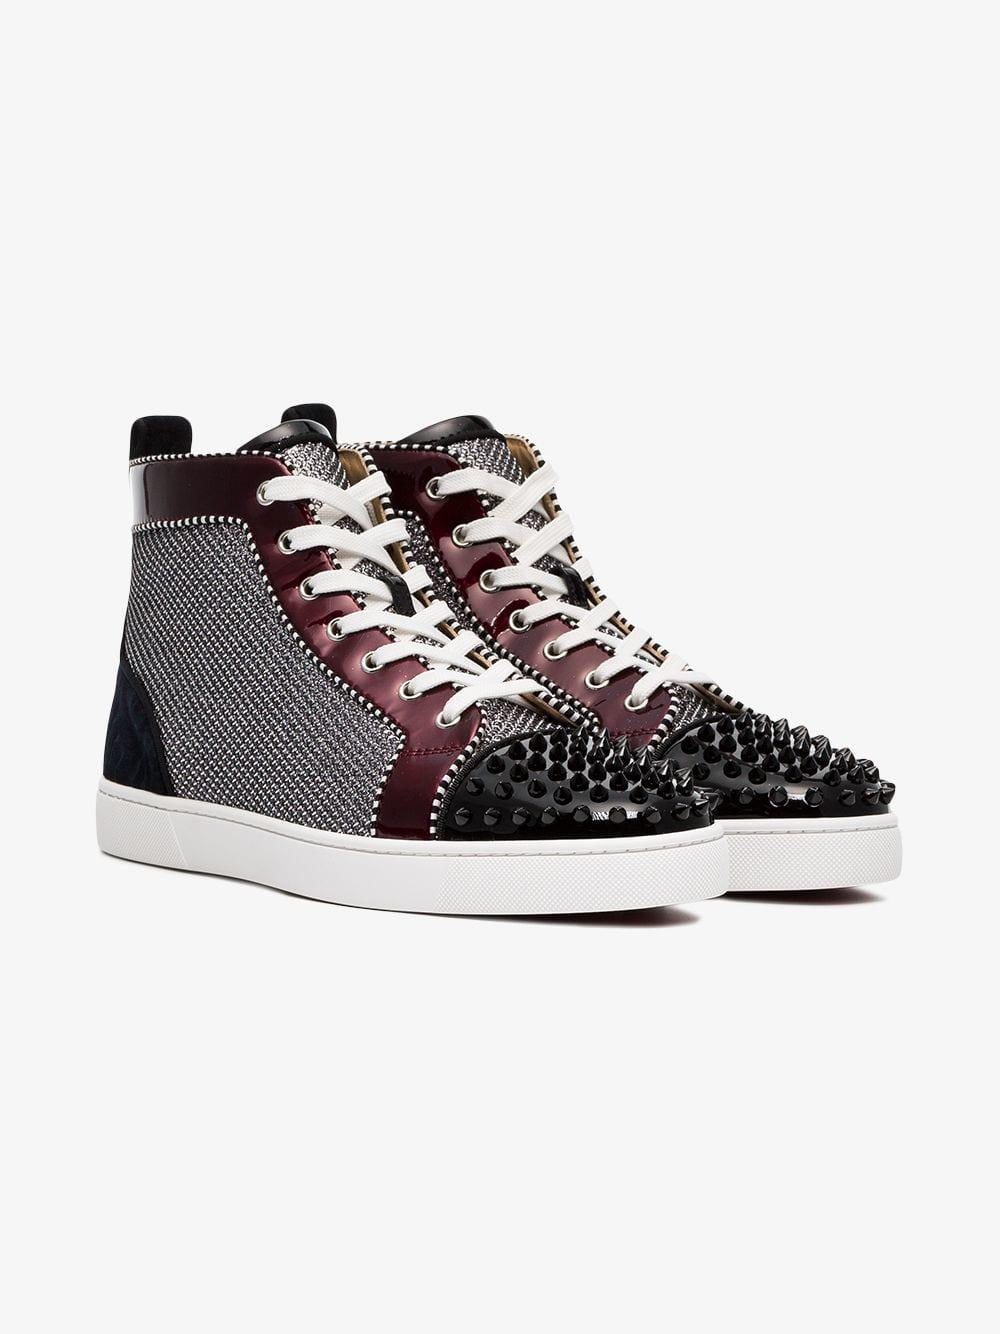 319b2f3c65f Christian Louboutin Orlato Stud Embellished And Patent Leather Sneakers in  Metallic for Men - Lyst